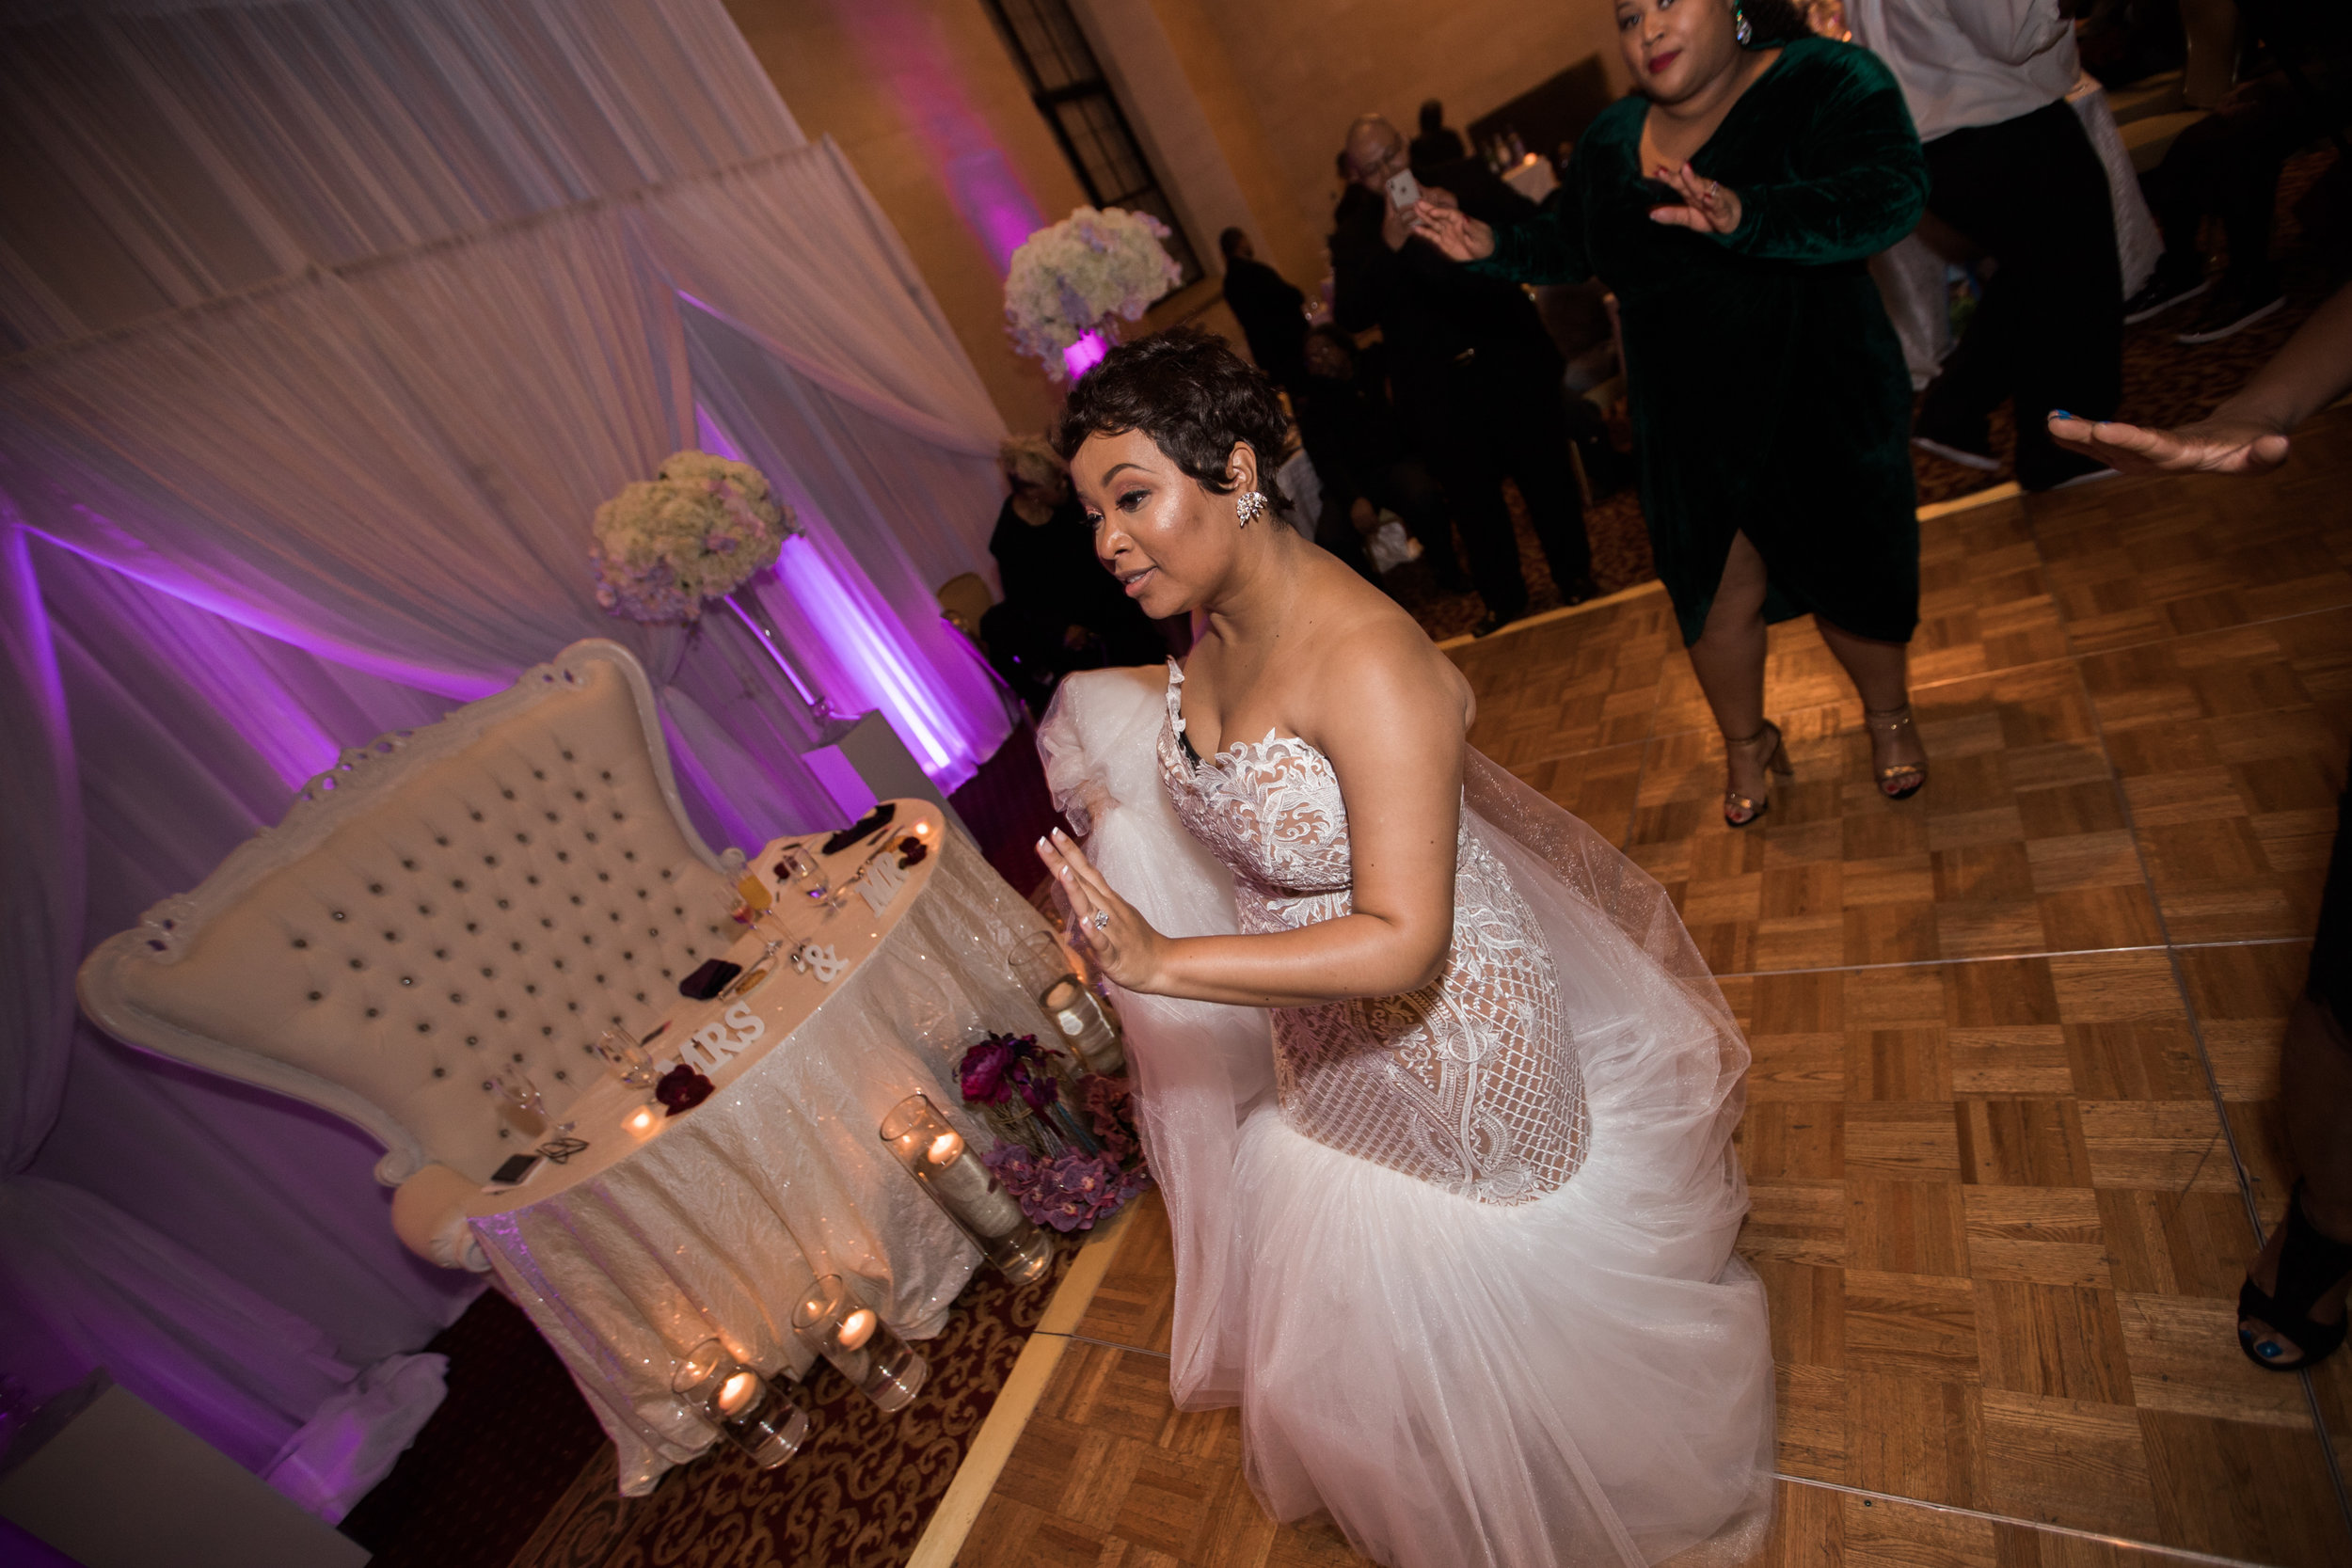 Best Classic Black Bride at The Grand Baltimore Maryland Husband and Wife Wedding Photographers Megapixels Media (89 of 98).jpg